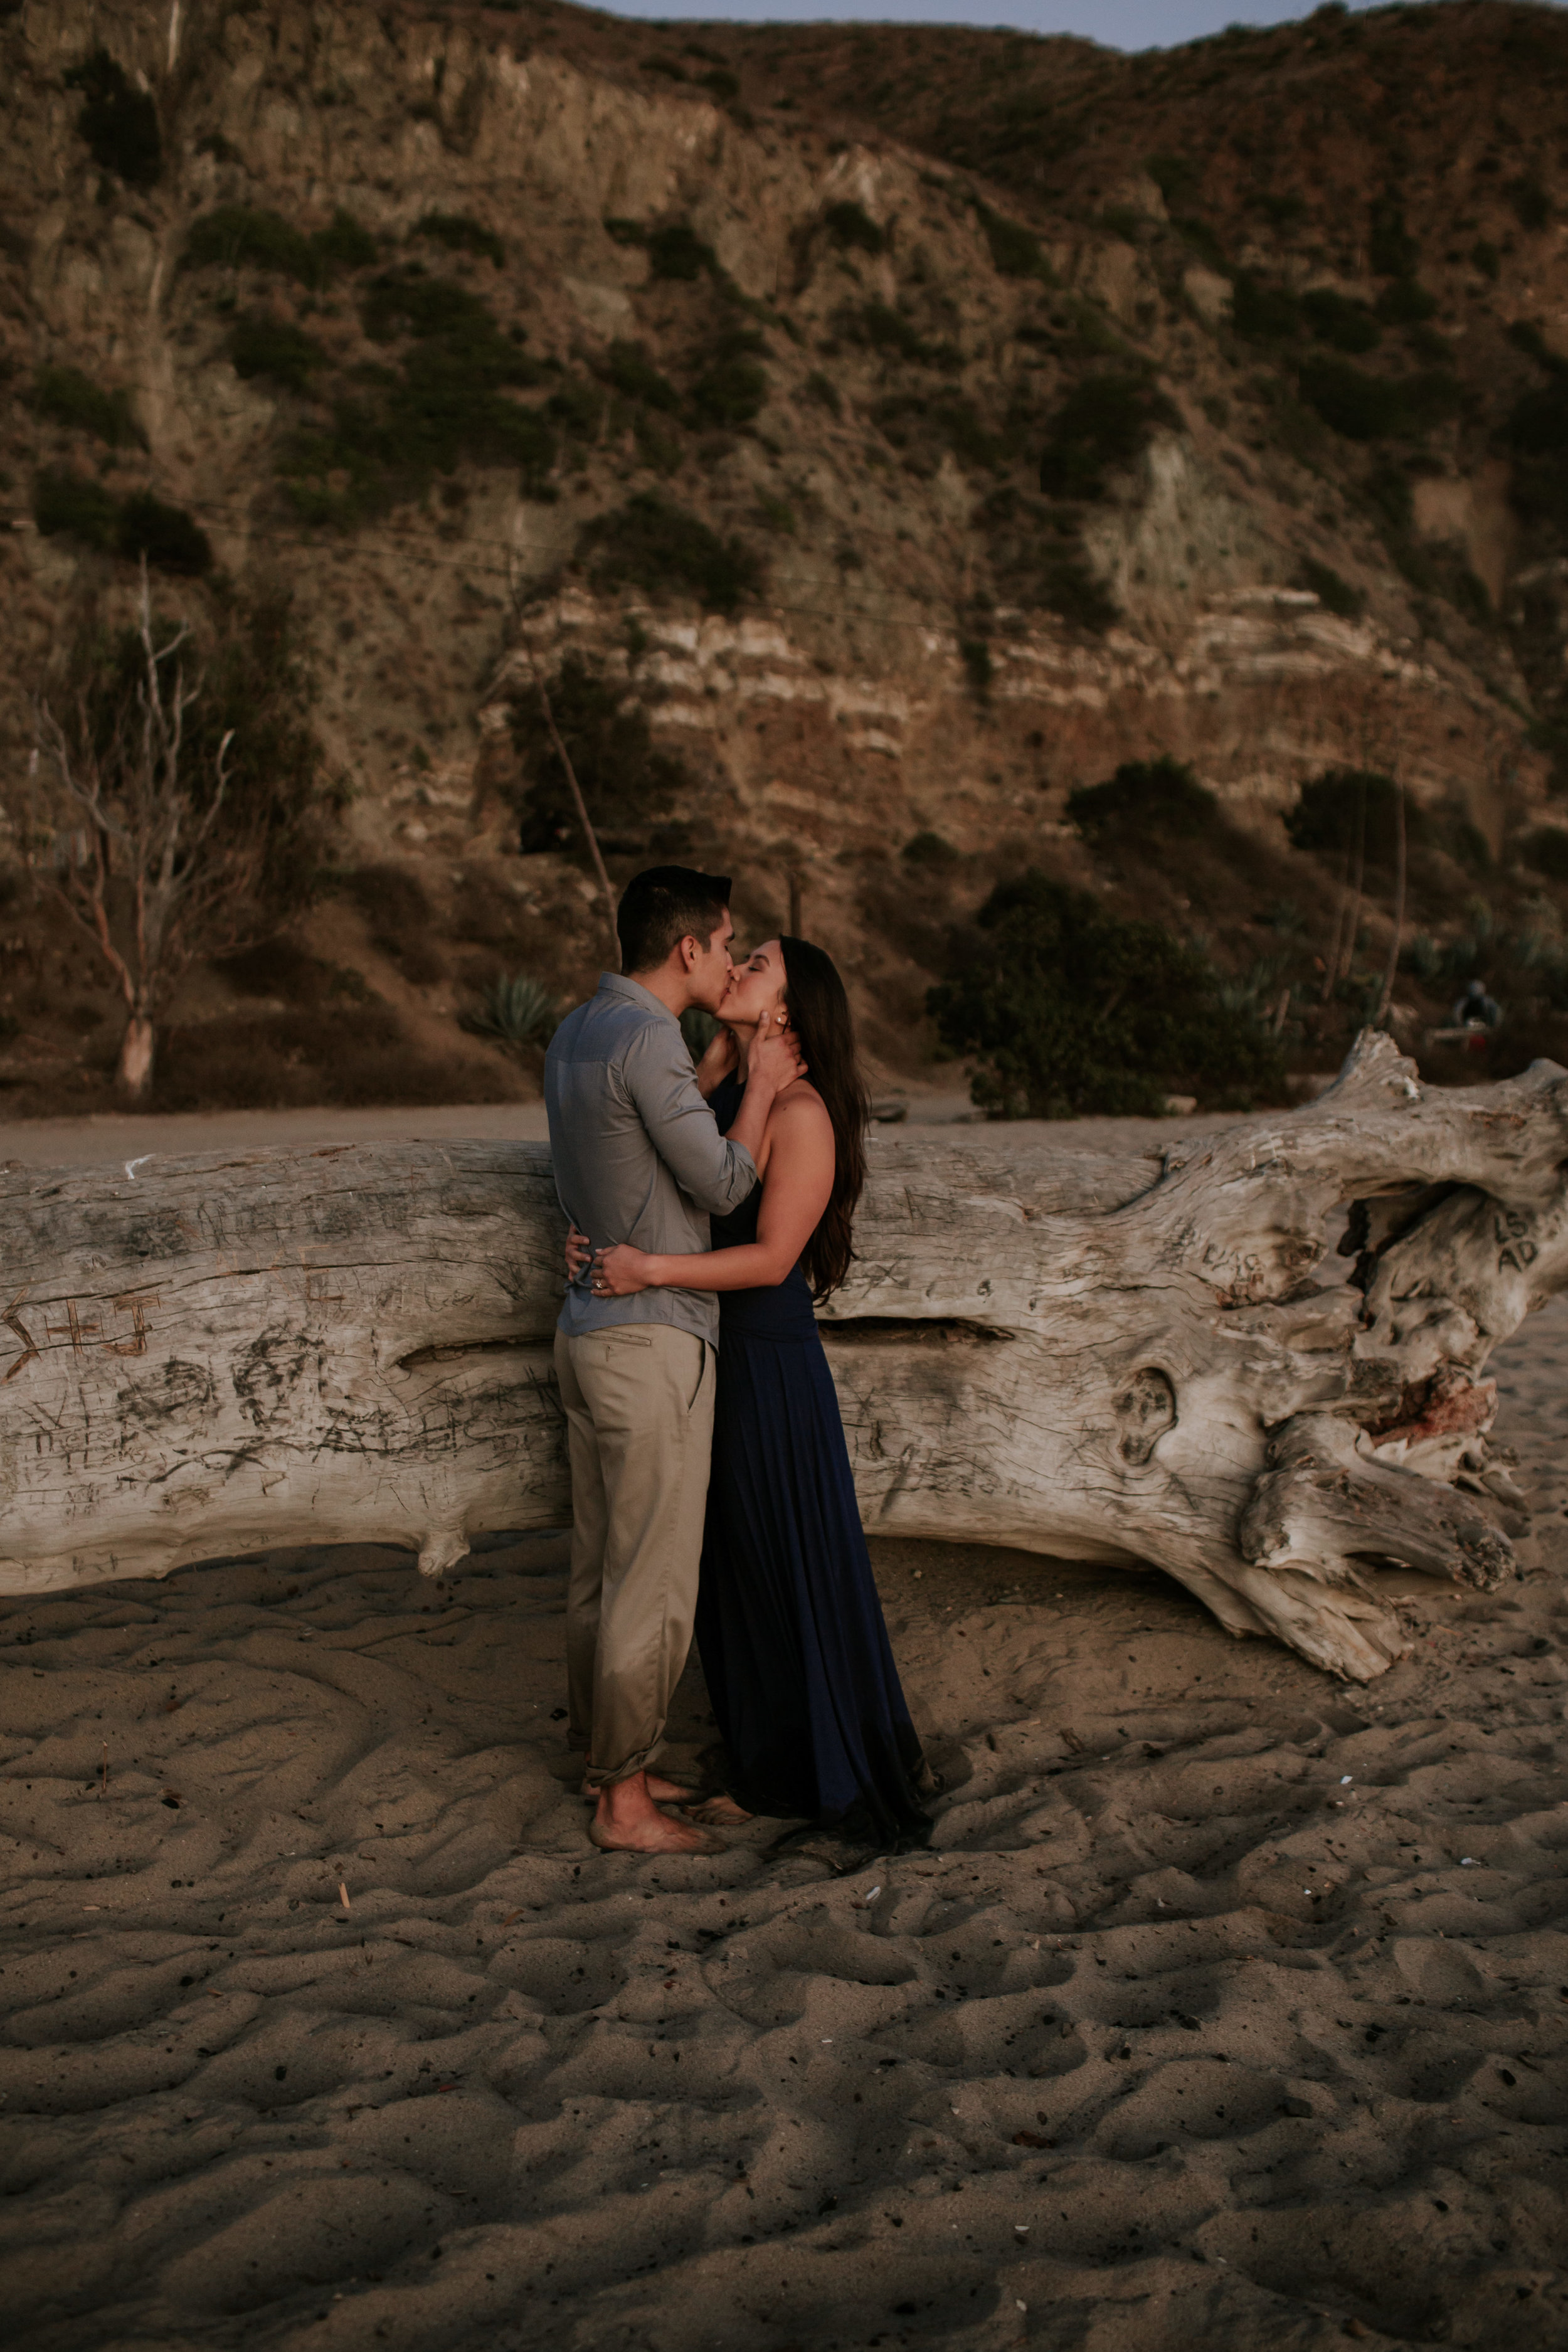 Jennifer and Andrew Engagement Point Mugu state park Malibu Ventura -193.jpg